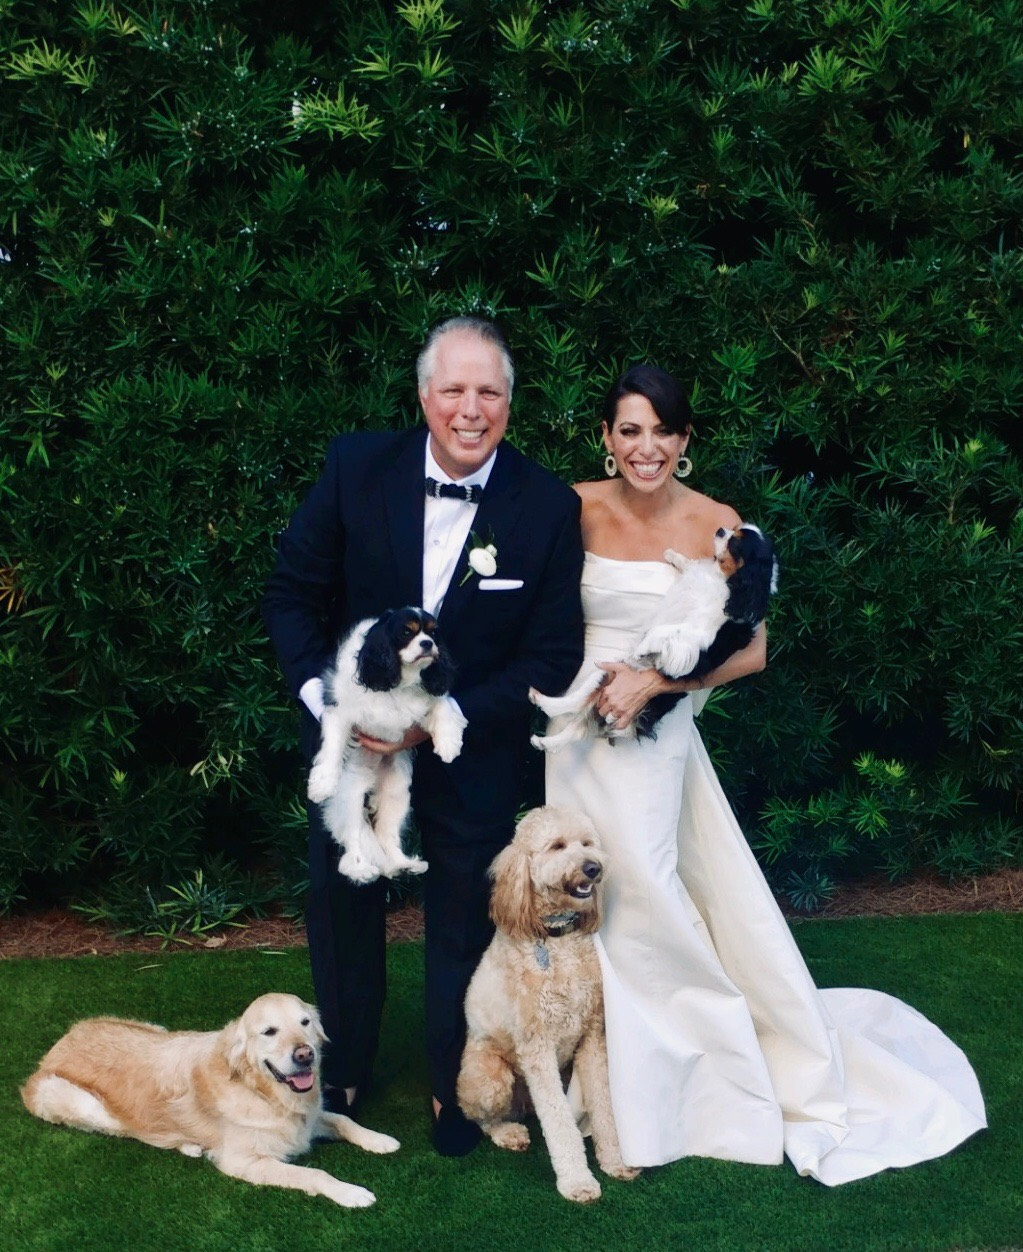 Their dogs are like family and attended the wedding as well.